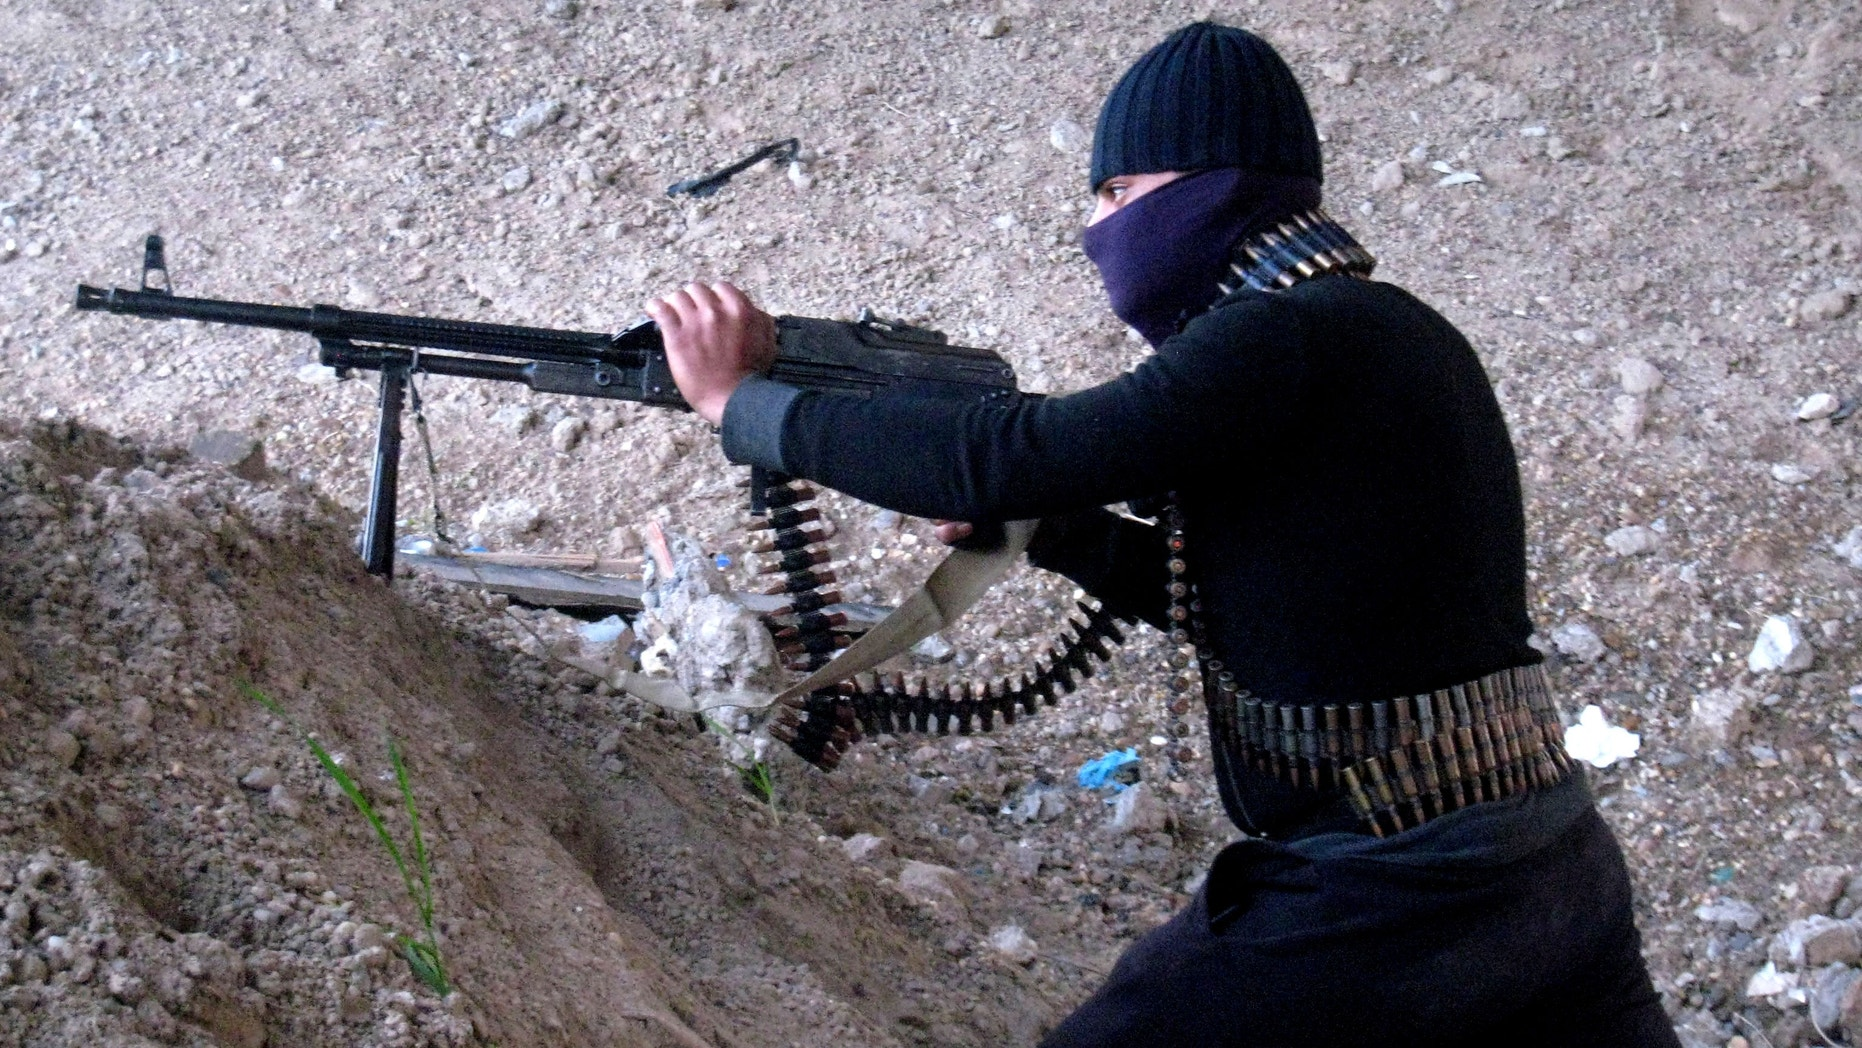 Jan. 19, 2014 - A gunmen takes cover during clashes with Iraqi security forces outside Fallujah, 40 miles west of Baghdad, Iraq.